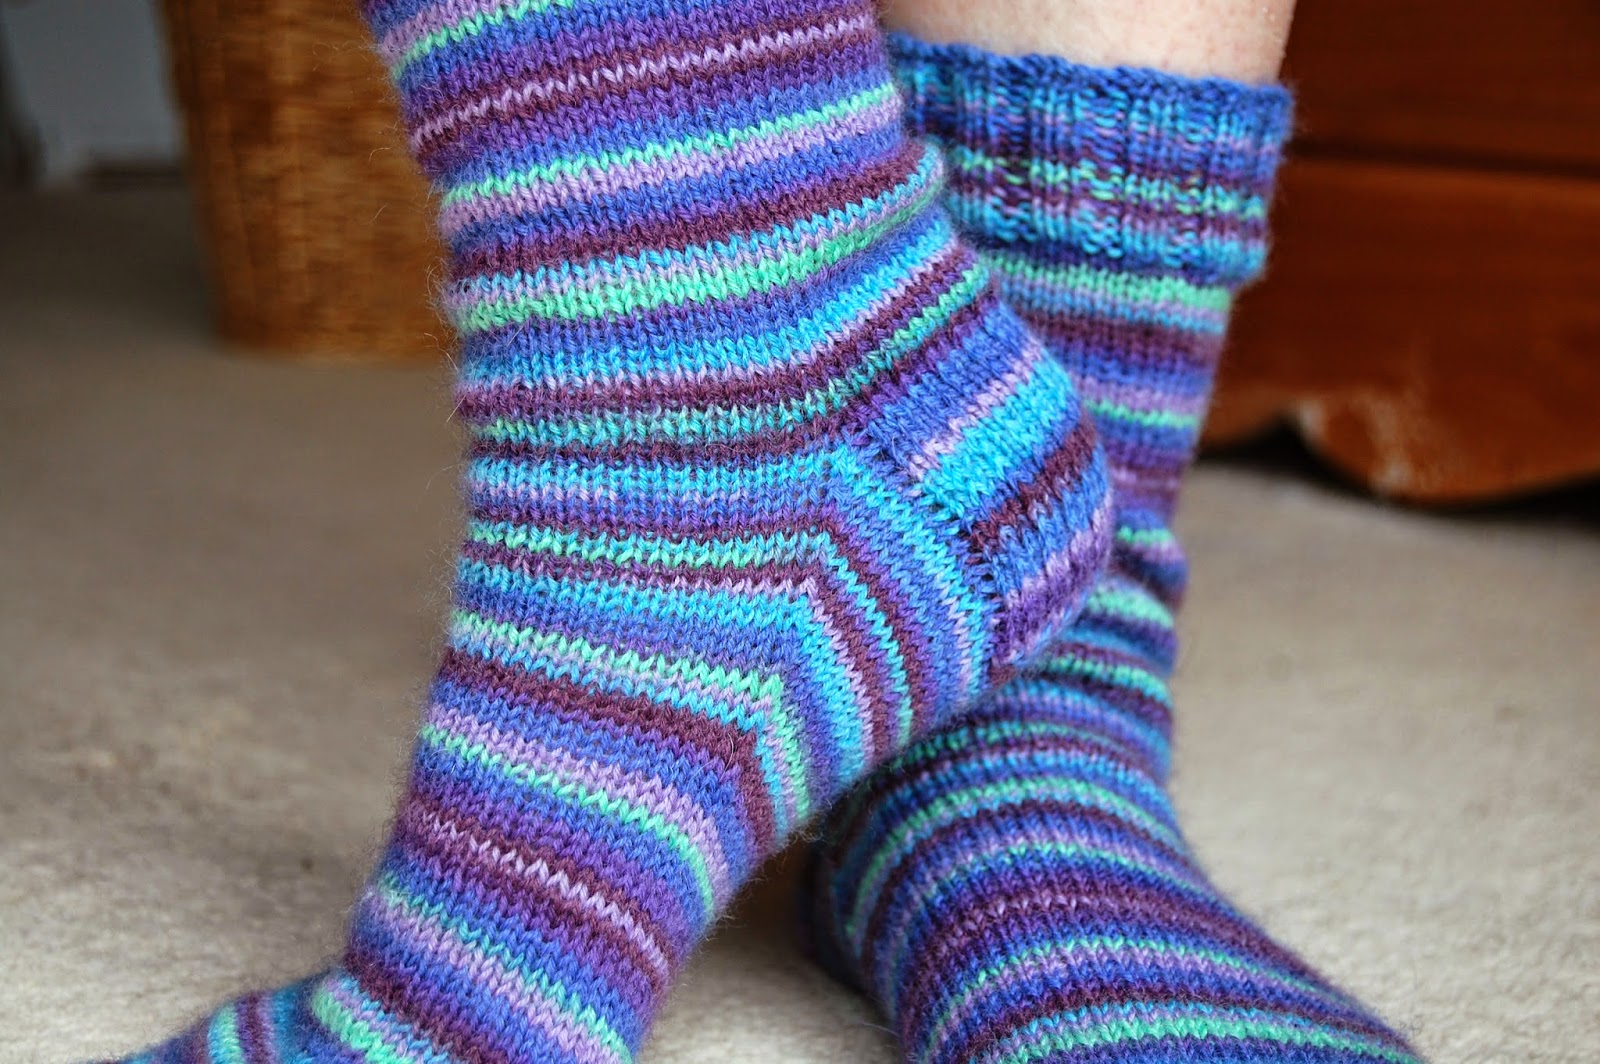 Simple Sock Knitting Patterns Beginner : Winwick Mum: Basic 4ply sock pattern and tutorial - easy beginner sock knitting!